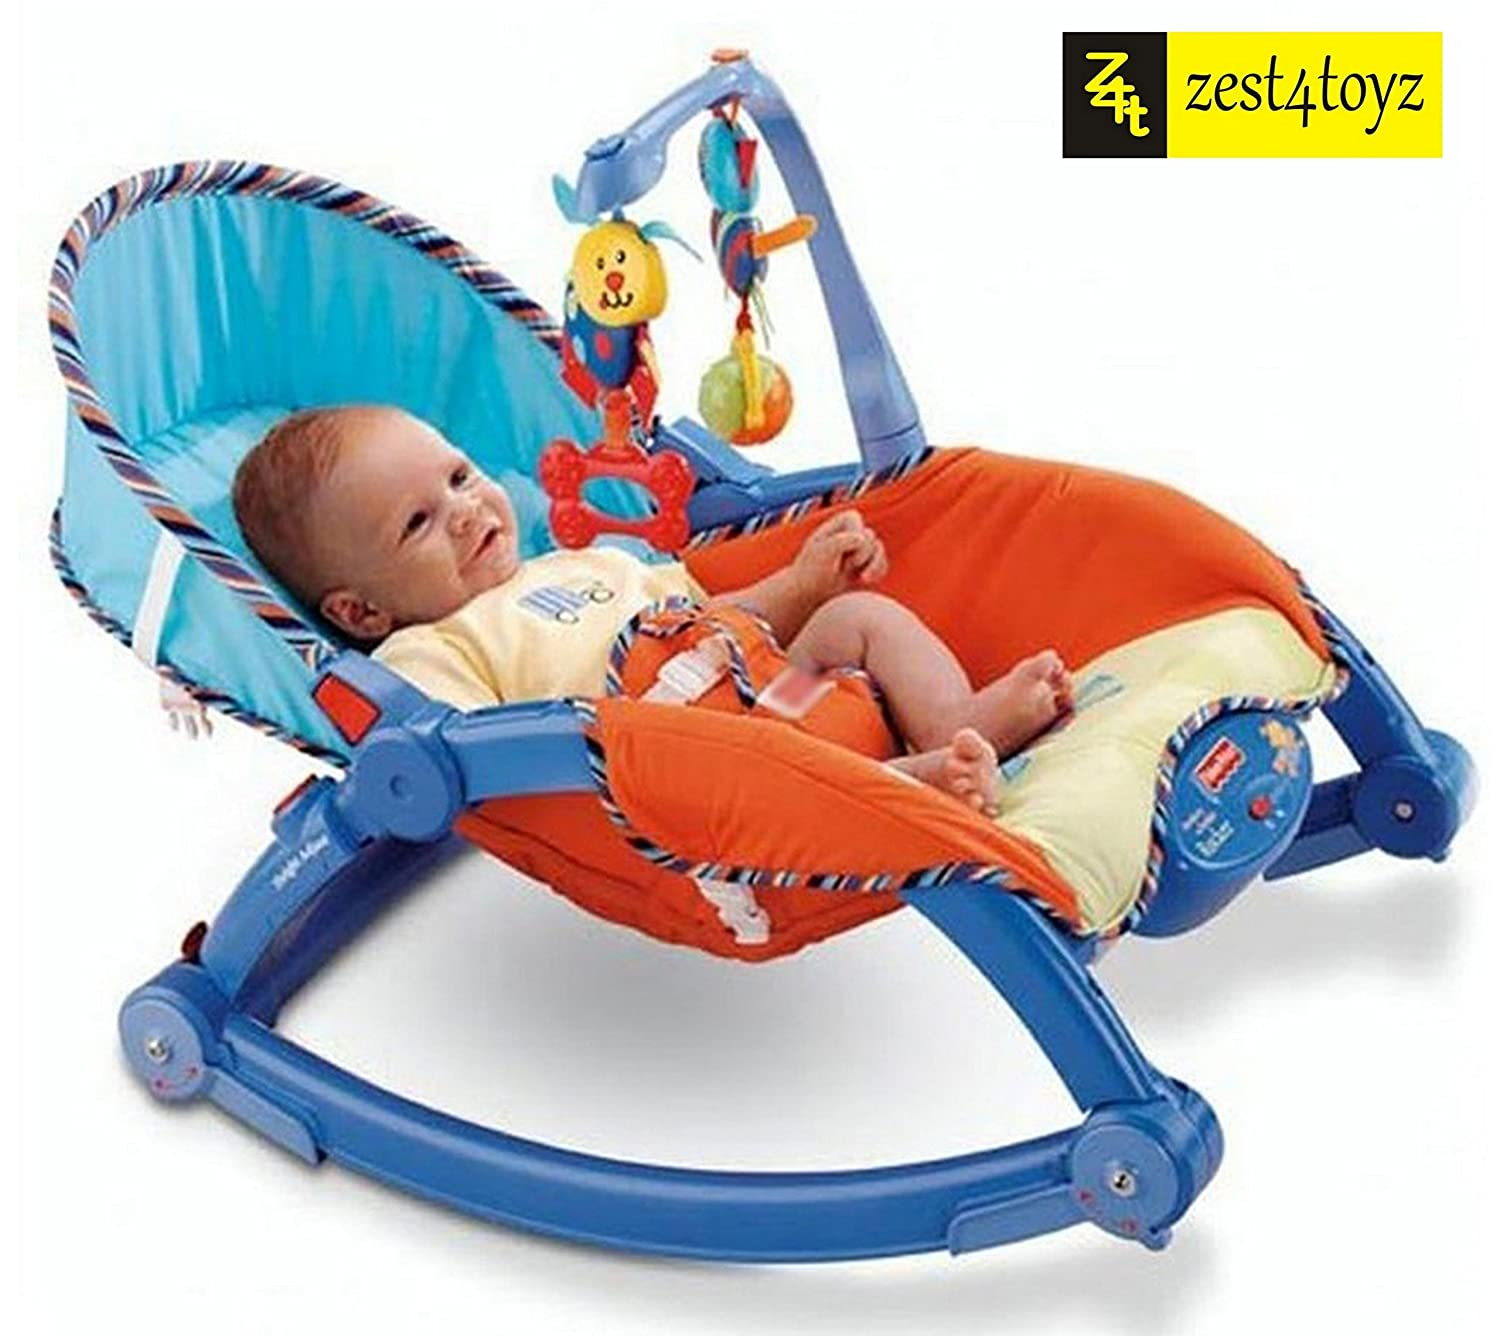 Buy Zest 4 Toyz Newborn-to-Toddler Portable Rocker Bouncer Chair Easy to Take Along (Blue) Online at Low Prices in India - Amazon.in  sc 1 st  Amazon.in & Buy Zest 4 Toyz Newborn-to-Toddler Portable Rocker Bouncer Chair ...